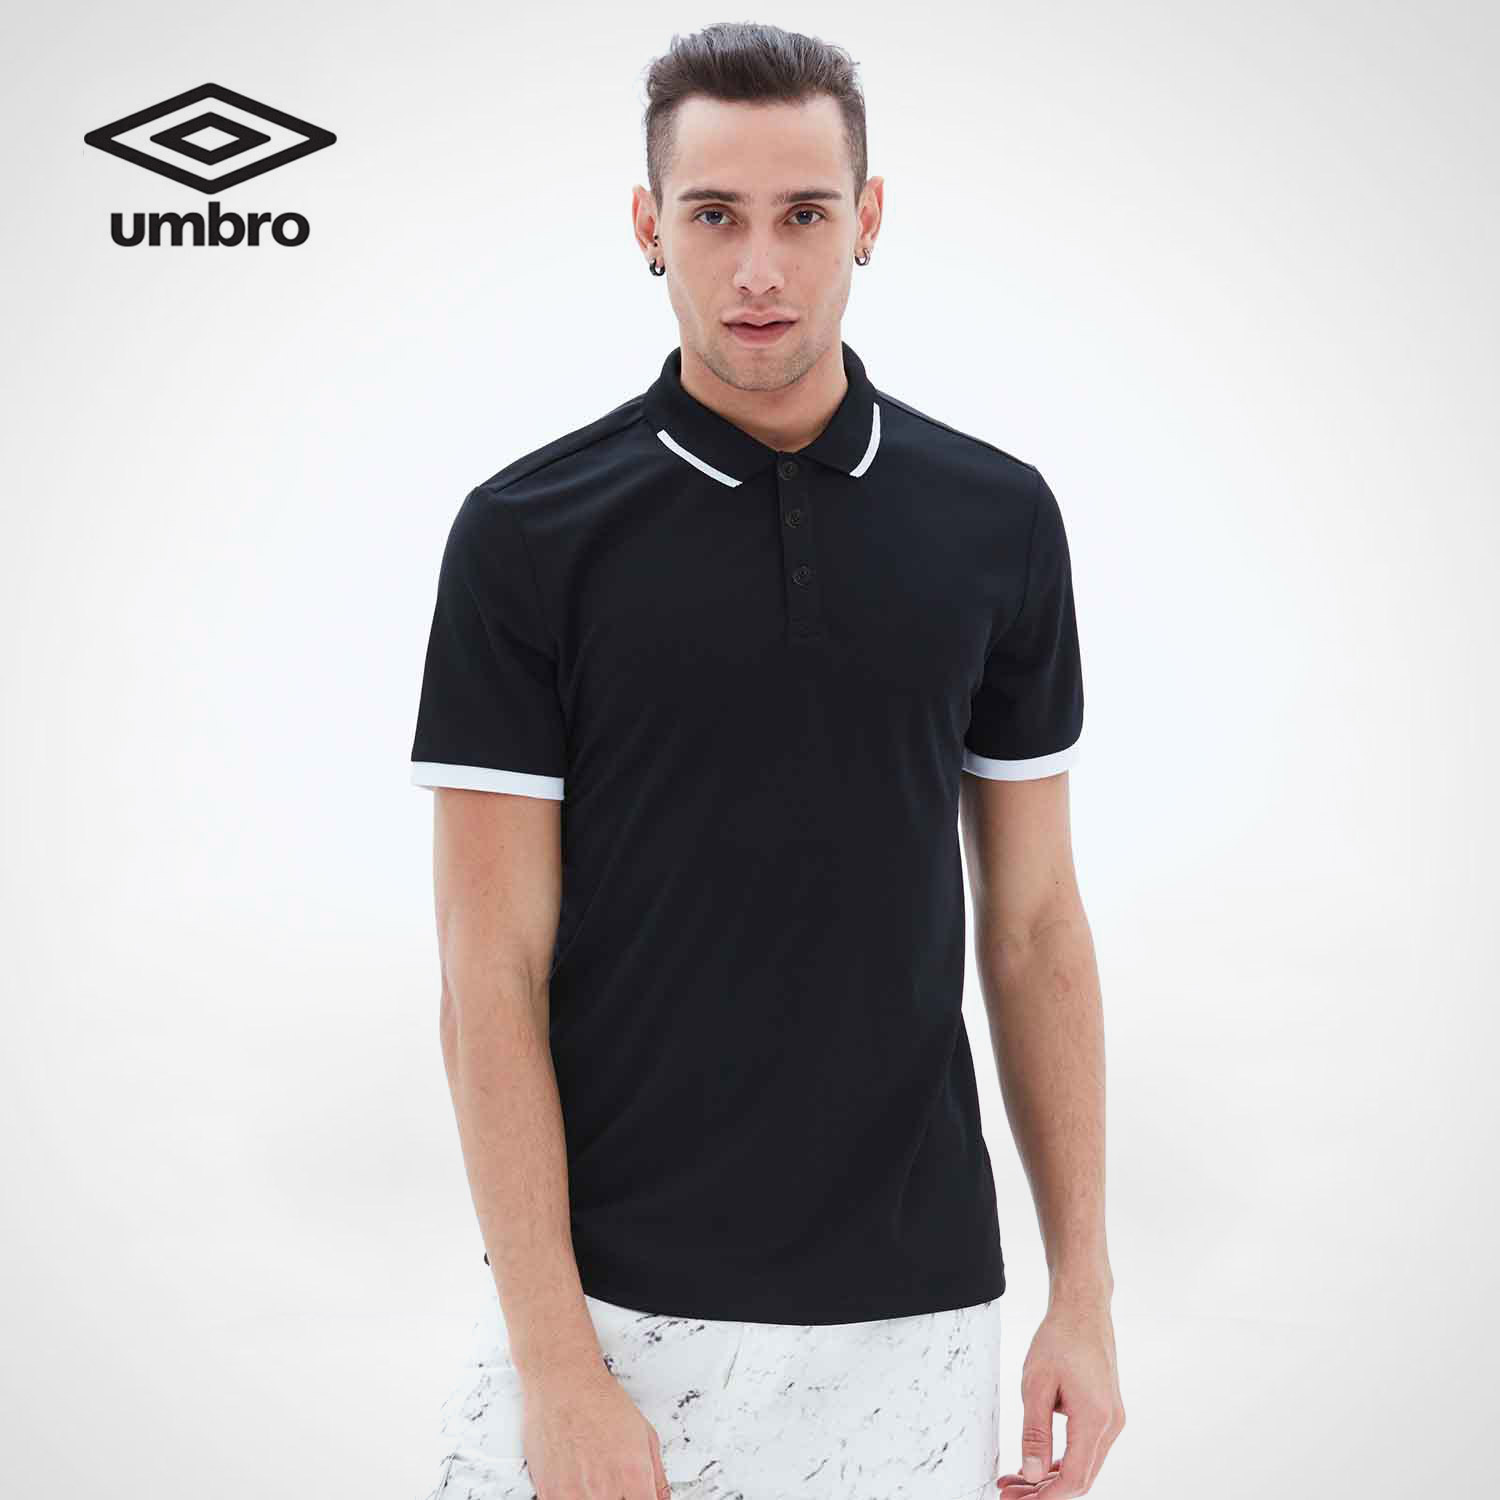 Umbro New Men Leisure Short Sleeved Polo Shirt Sports Style Breathable UO182AP2601 ...